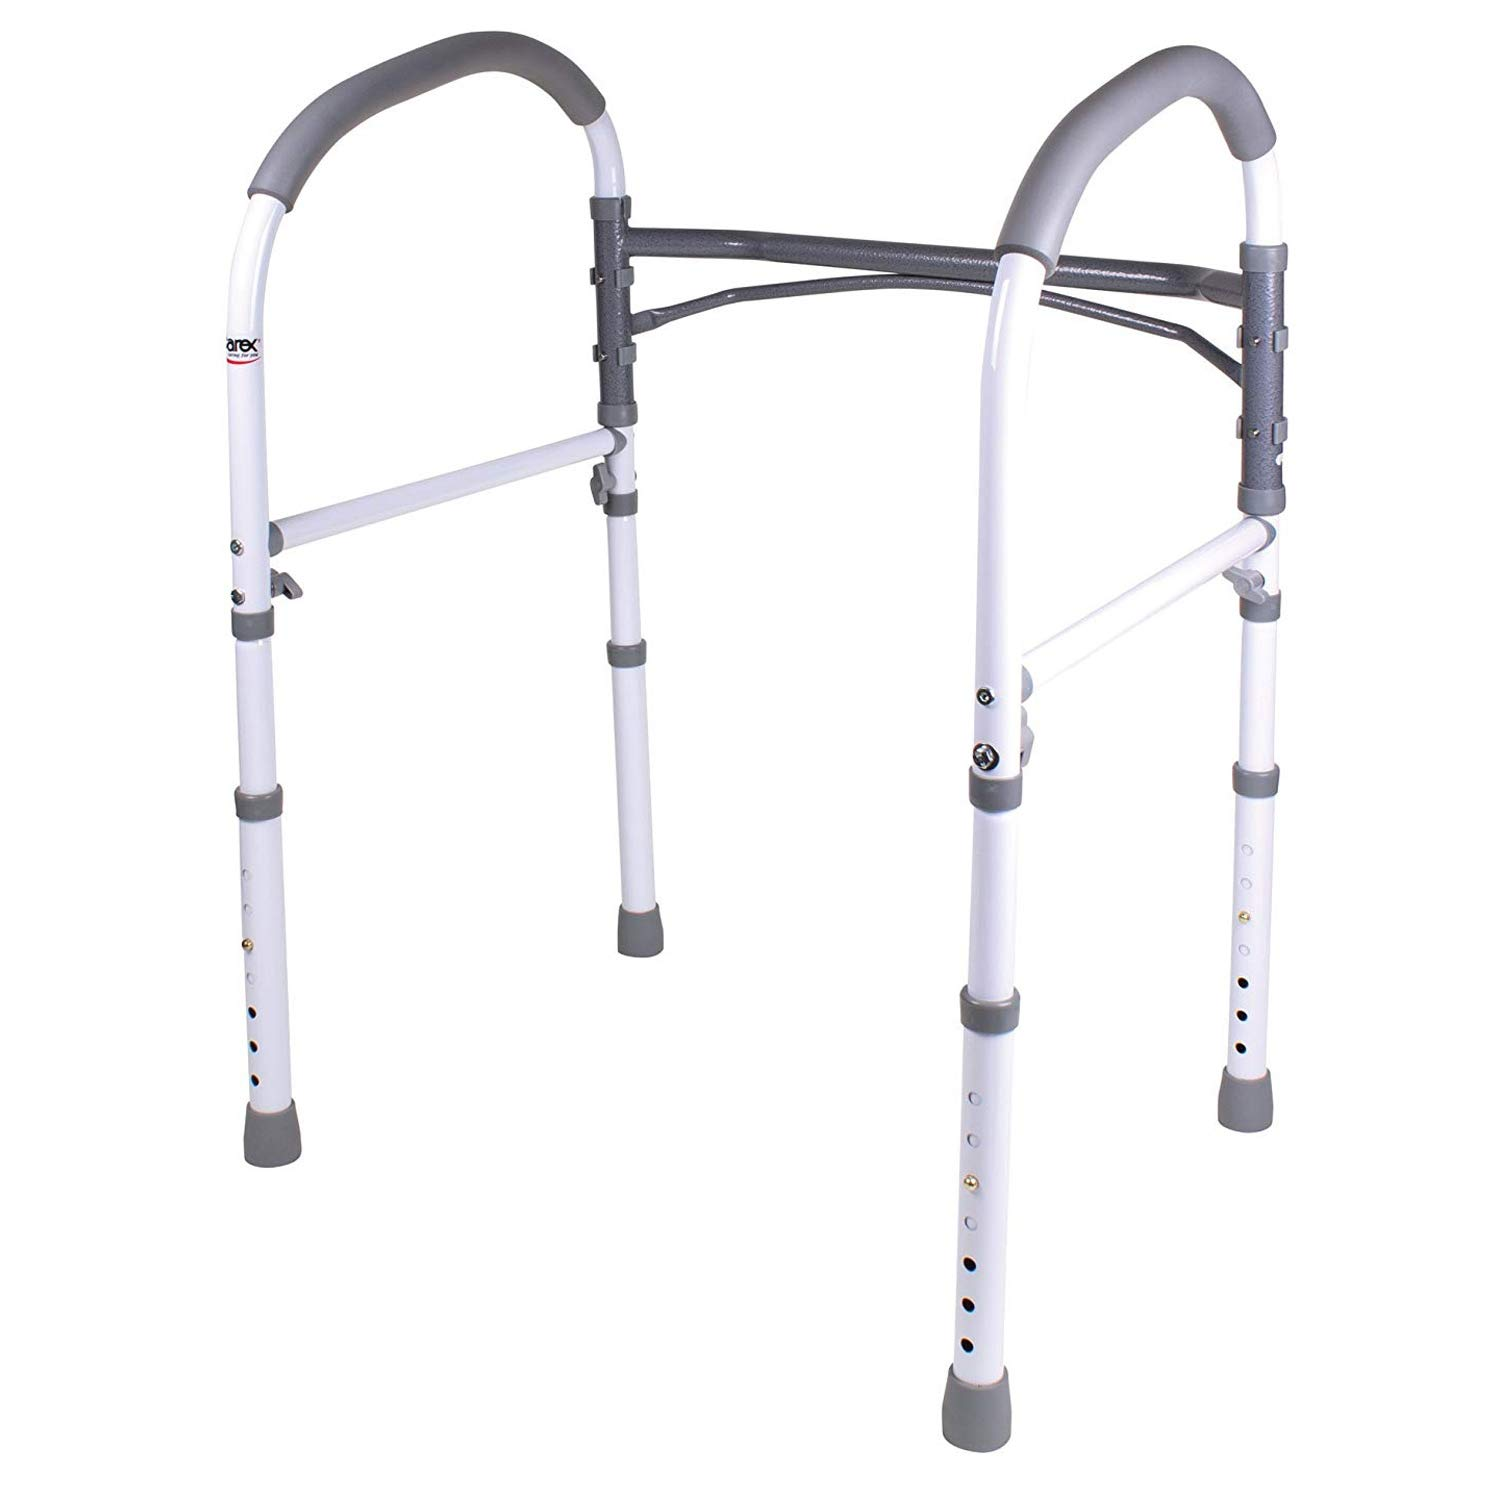 Carex Toilet Safety Rails, Toilet Handles for Elderly and Handicap, Bathroom Safety Aid and Handrail